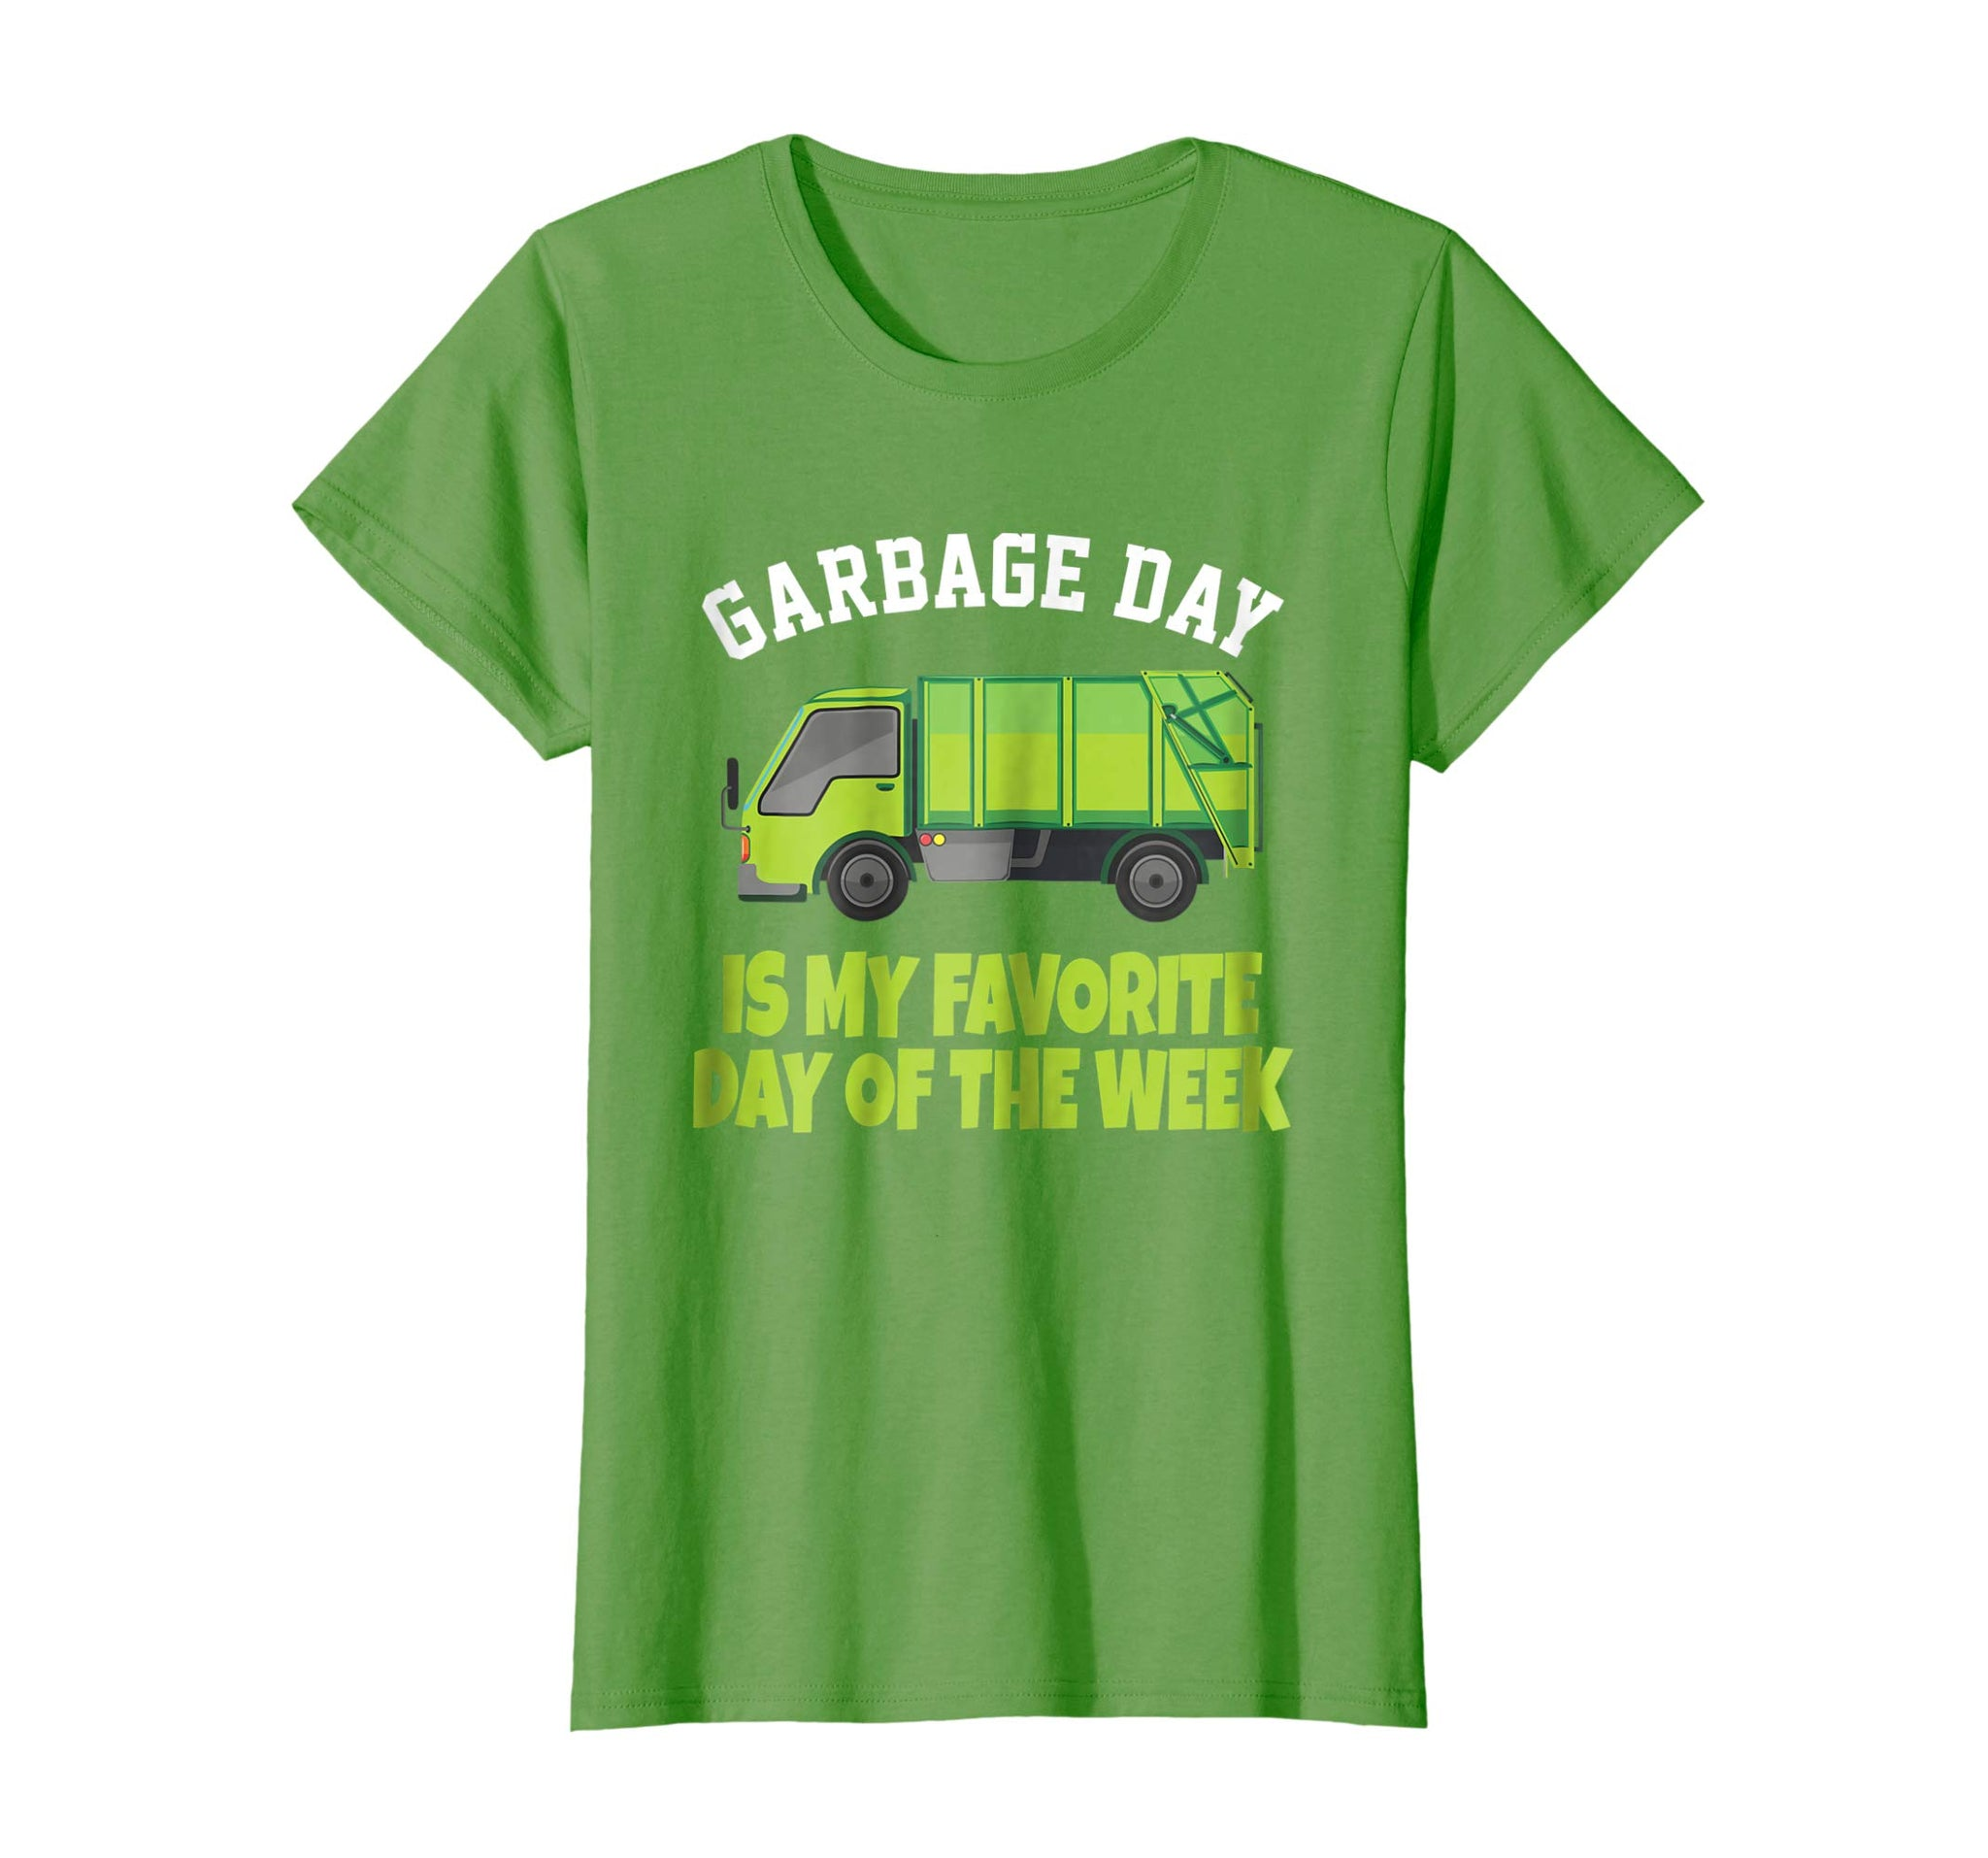 Garbage Day Truck T-Shirt - Waste Disposal Dumpster Tee